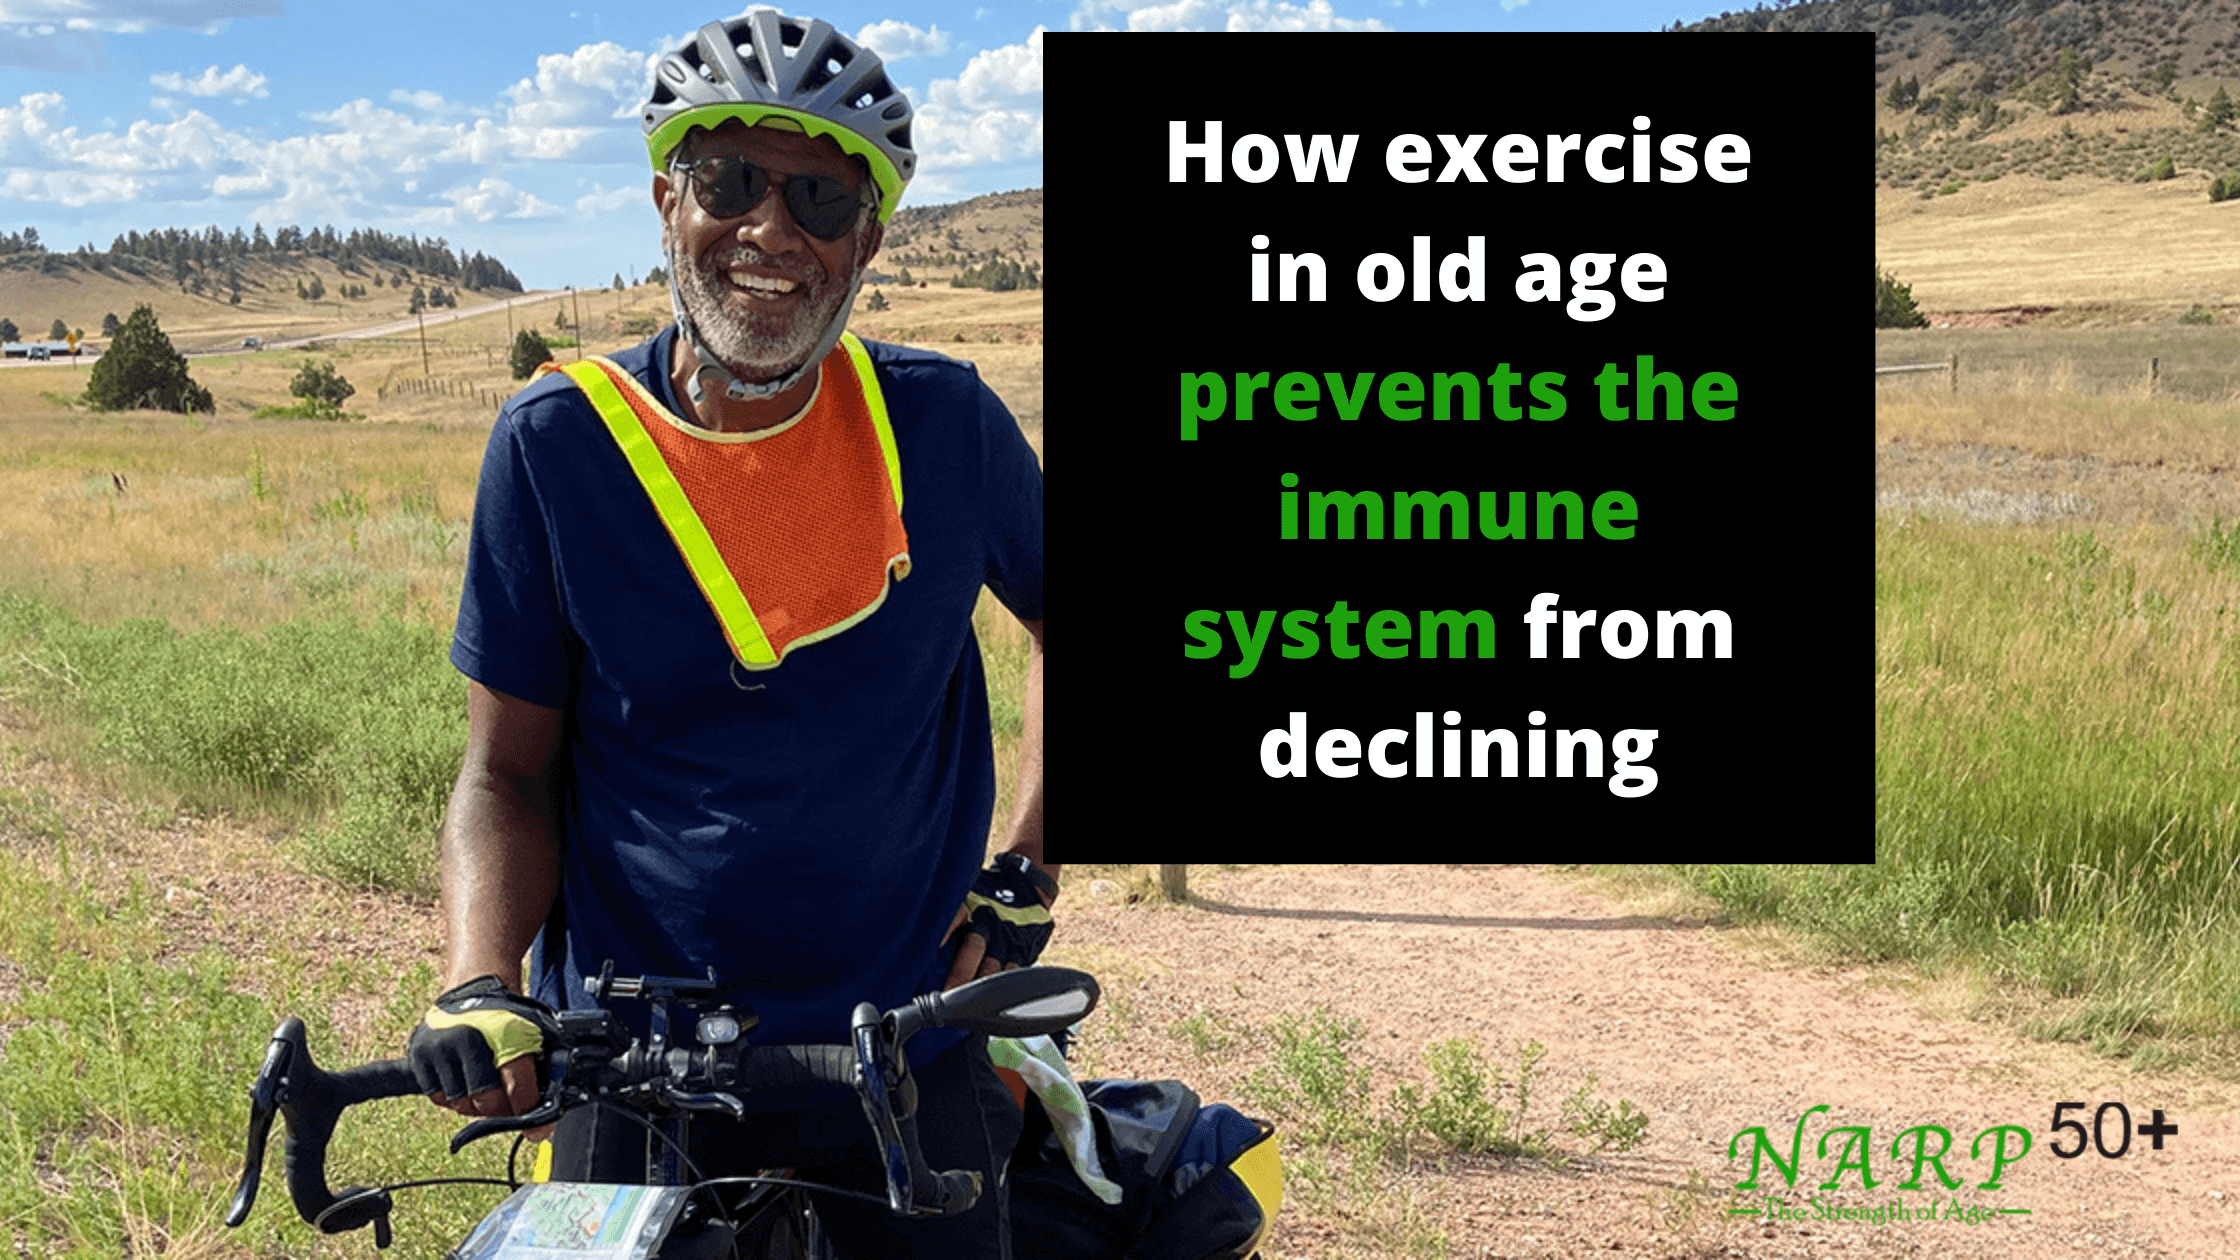 How exercise in old age